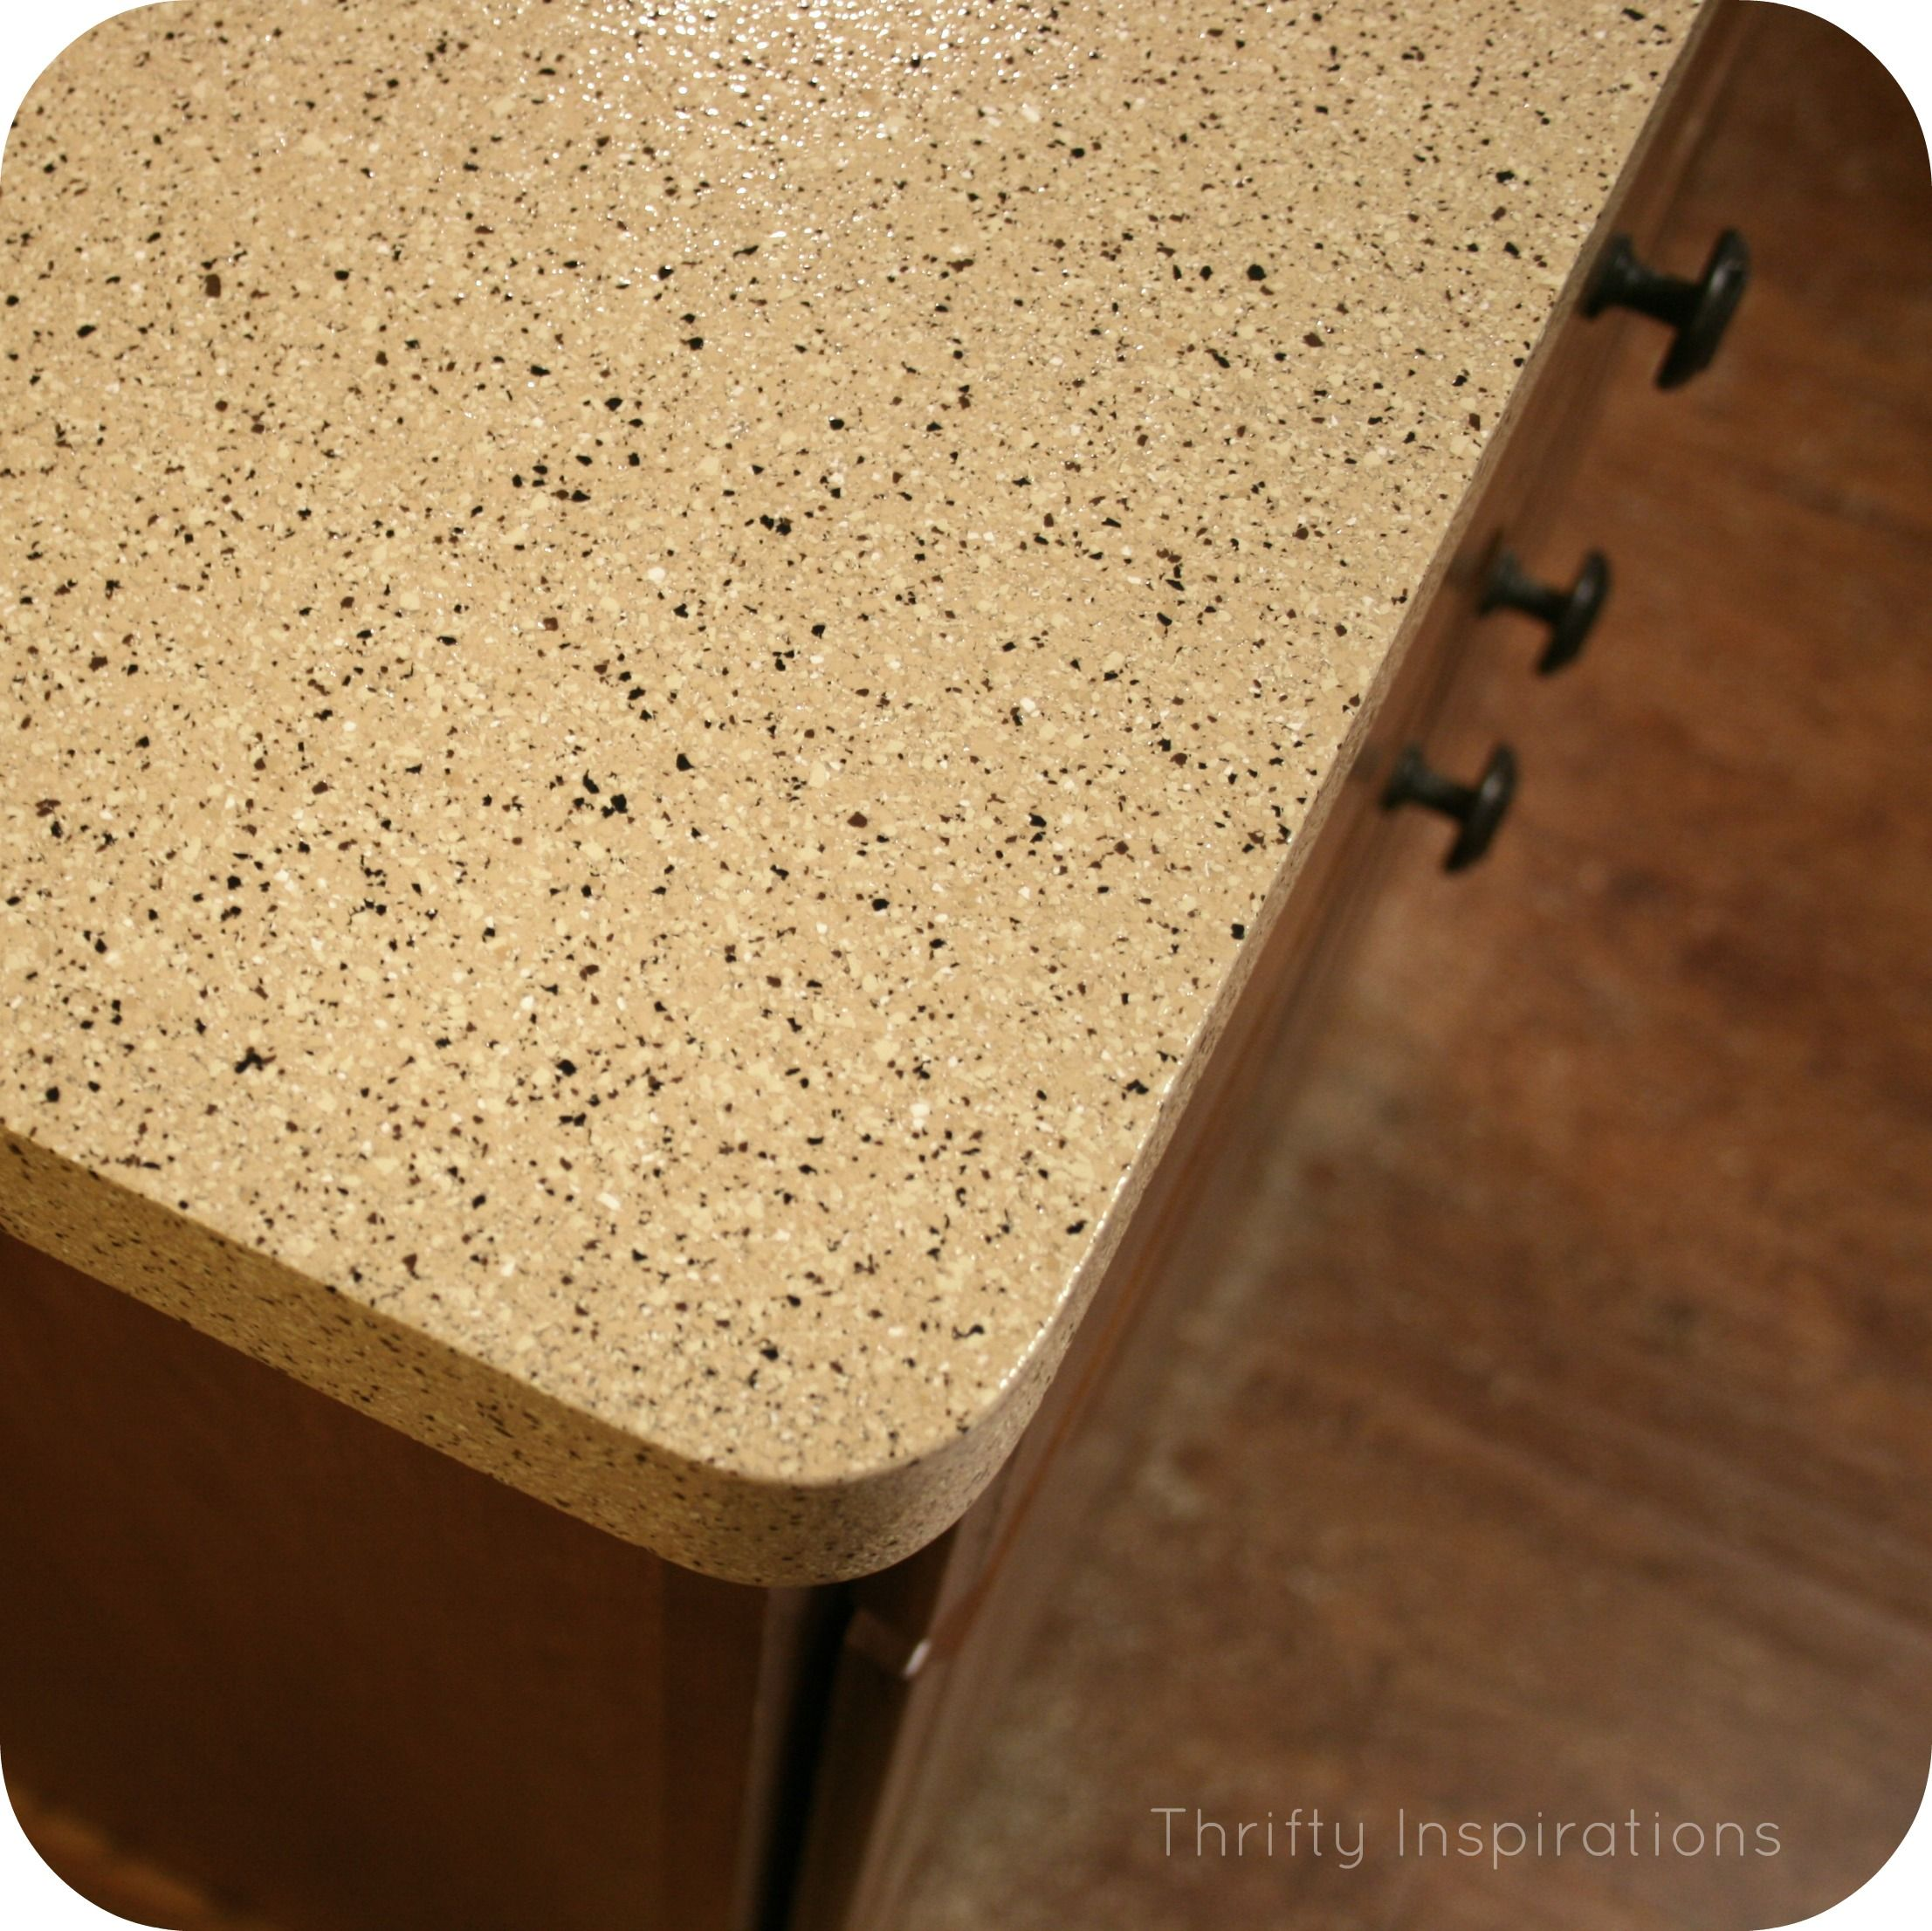 Laminate Countertops Redone Using Rustoleum Countertop Transformations Kit In Desert Sand This Is